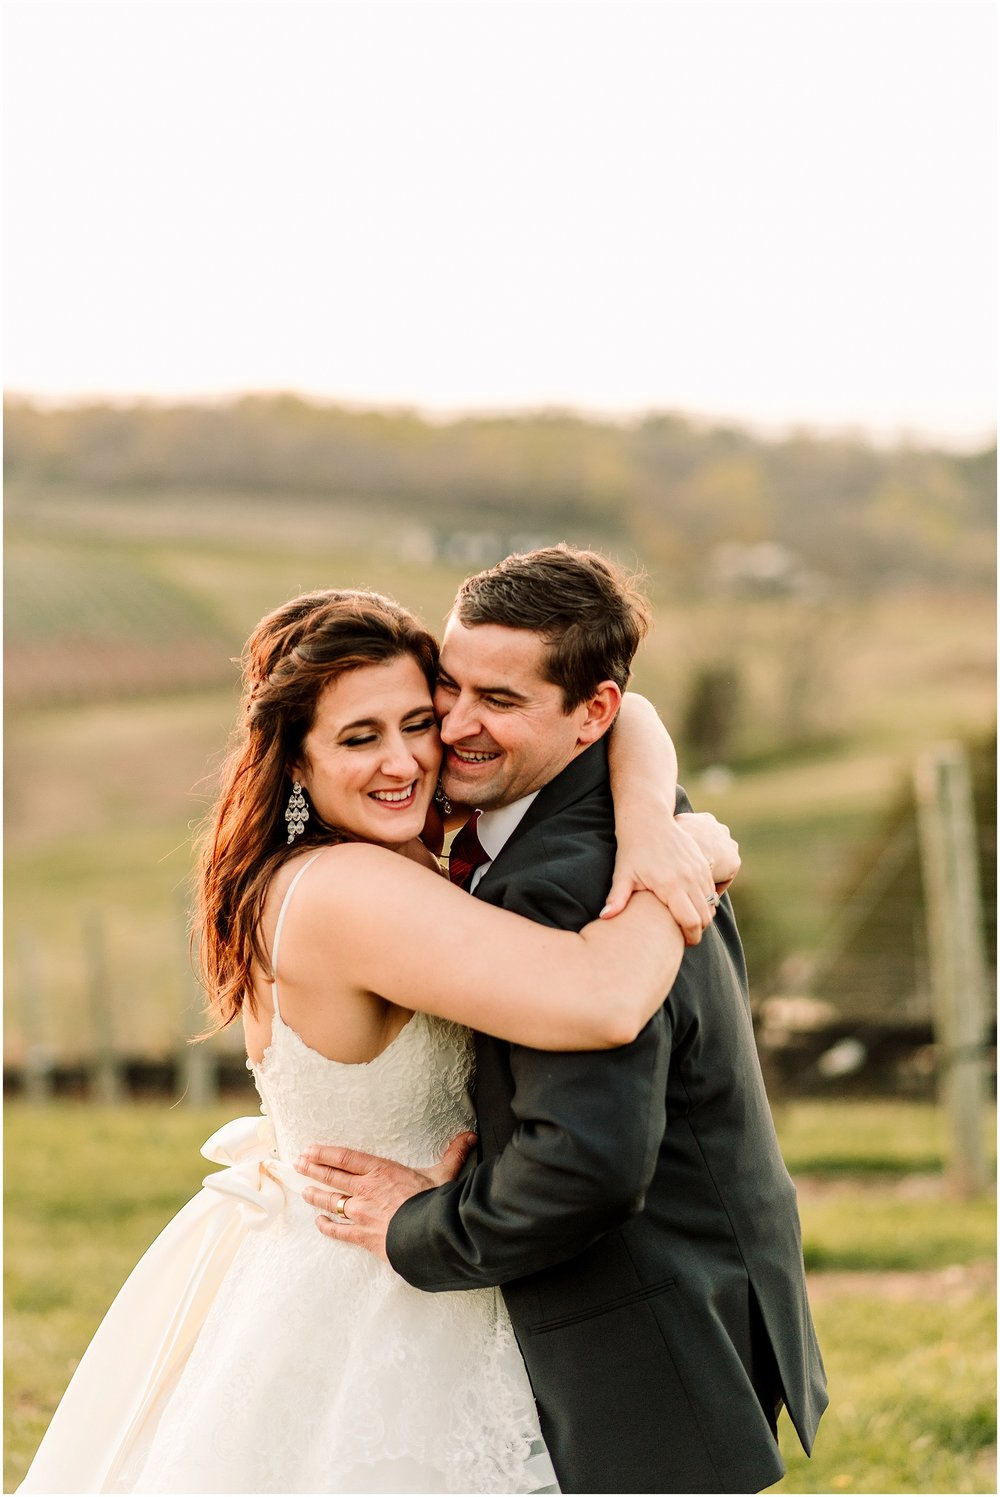 Hannah Leigh Photography Stone Tower Winery Wedding Leesburg VA_7750.jpg